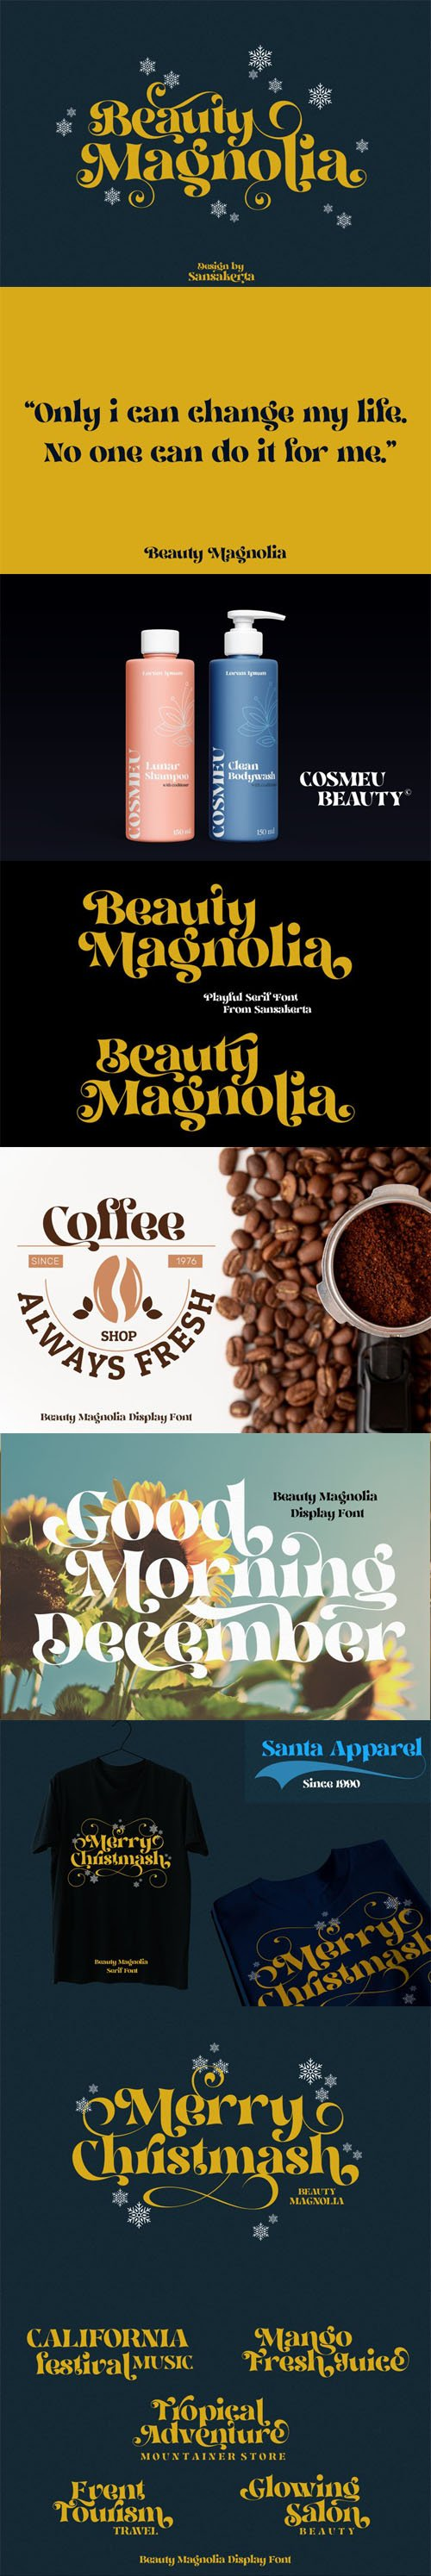 Beauty Magnolia Display Font